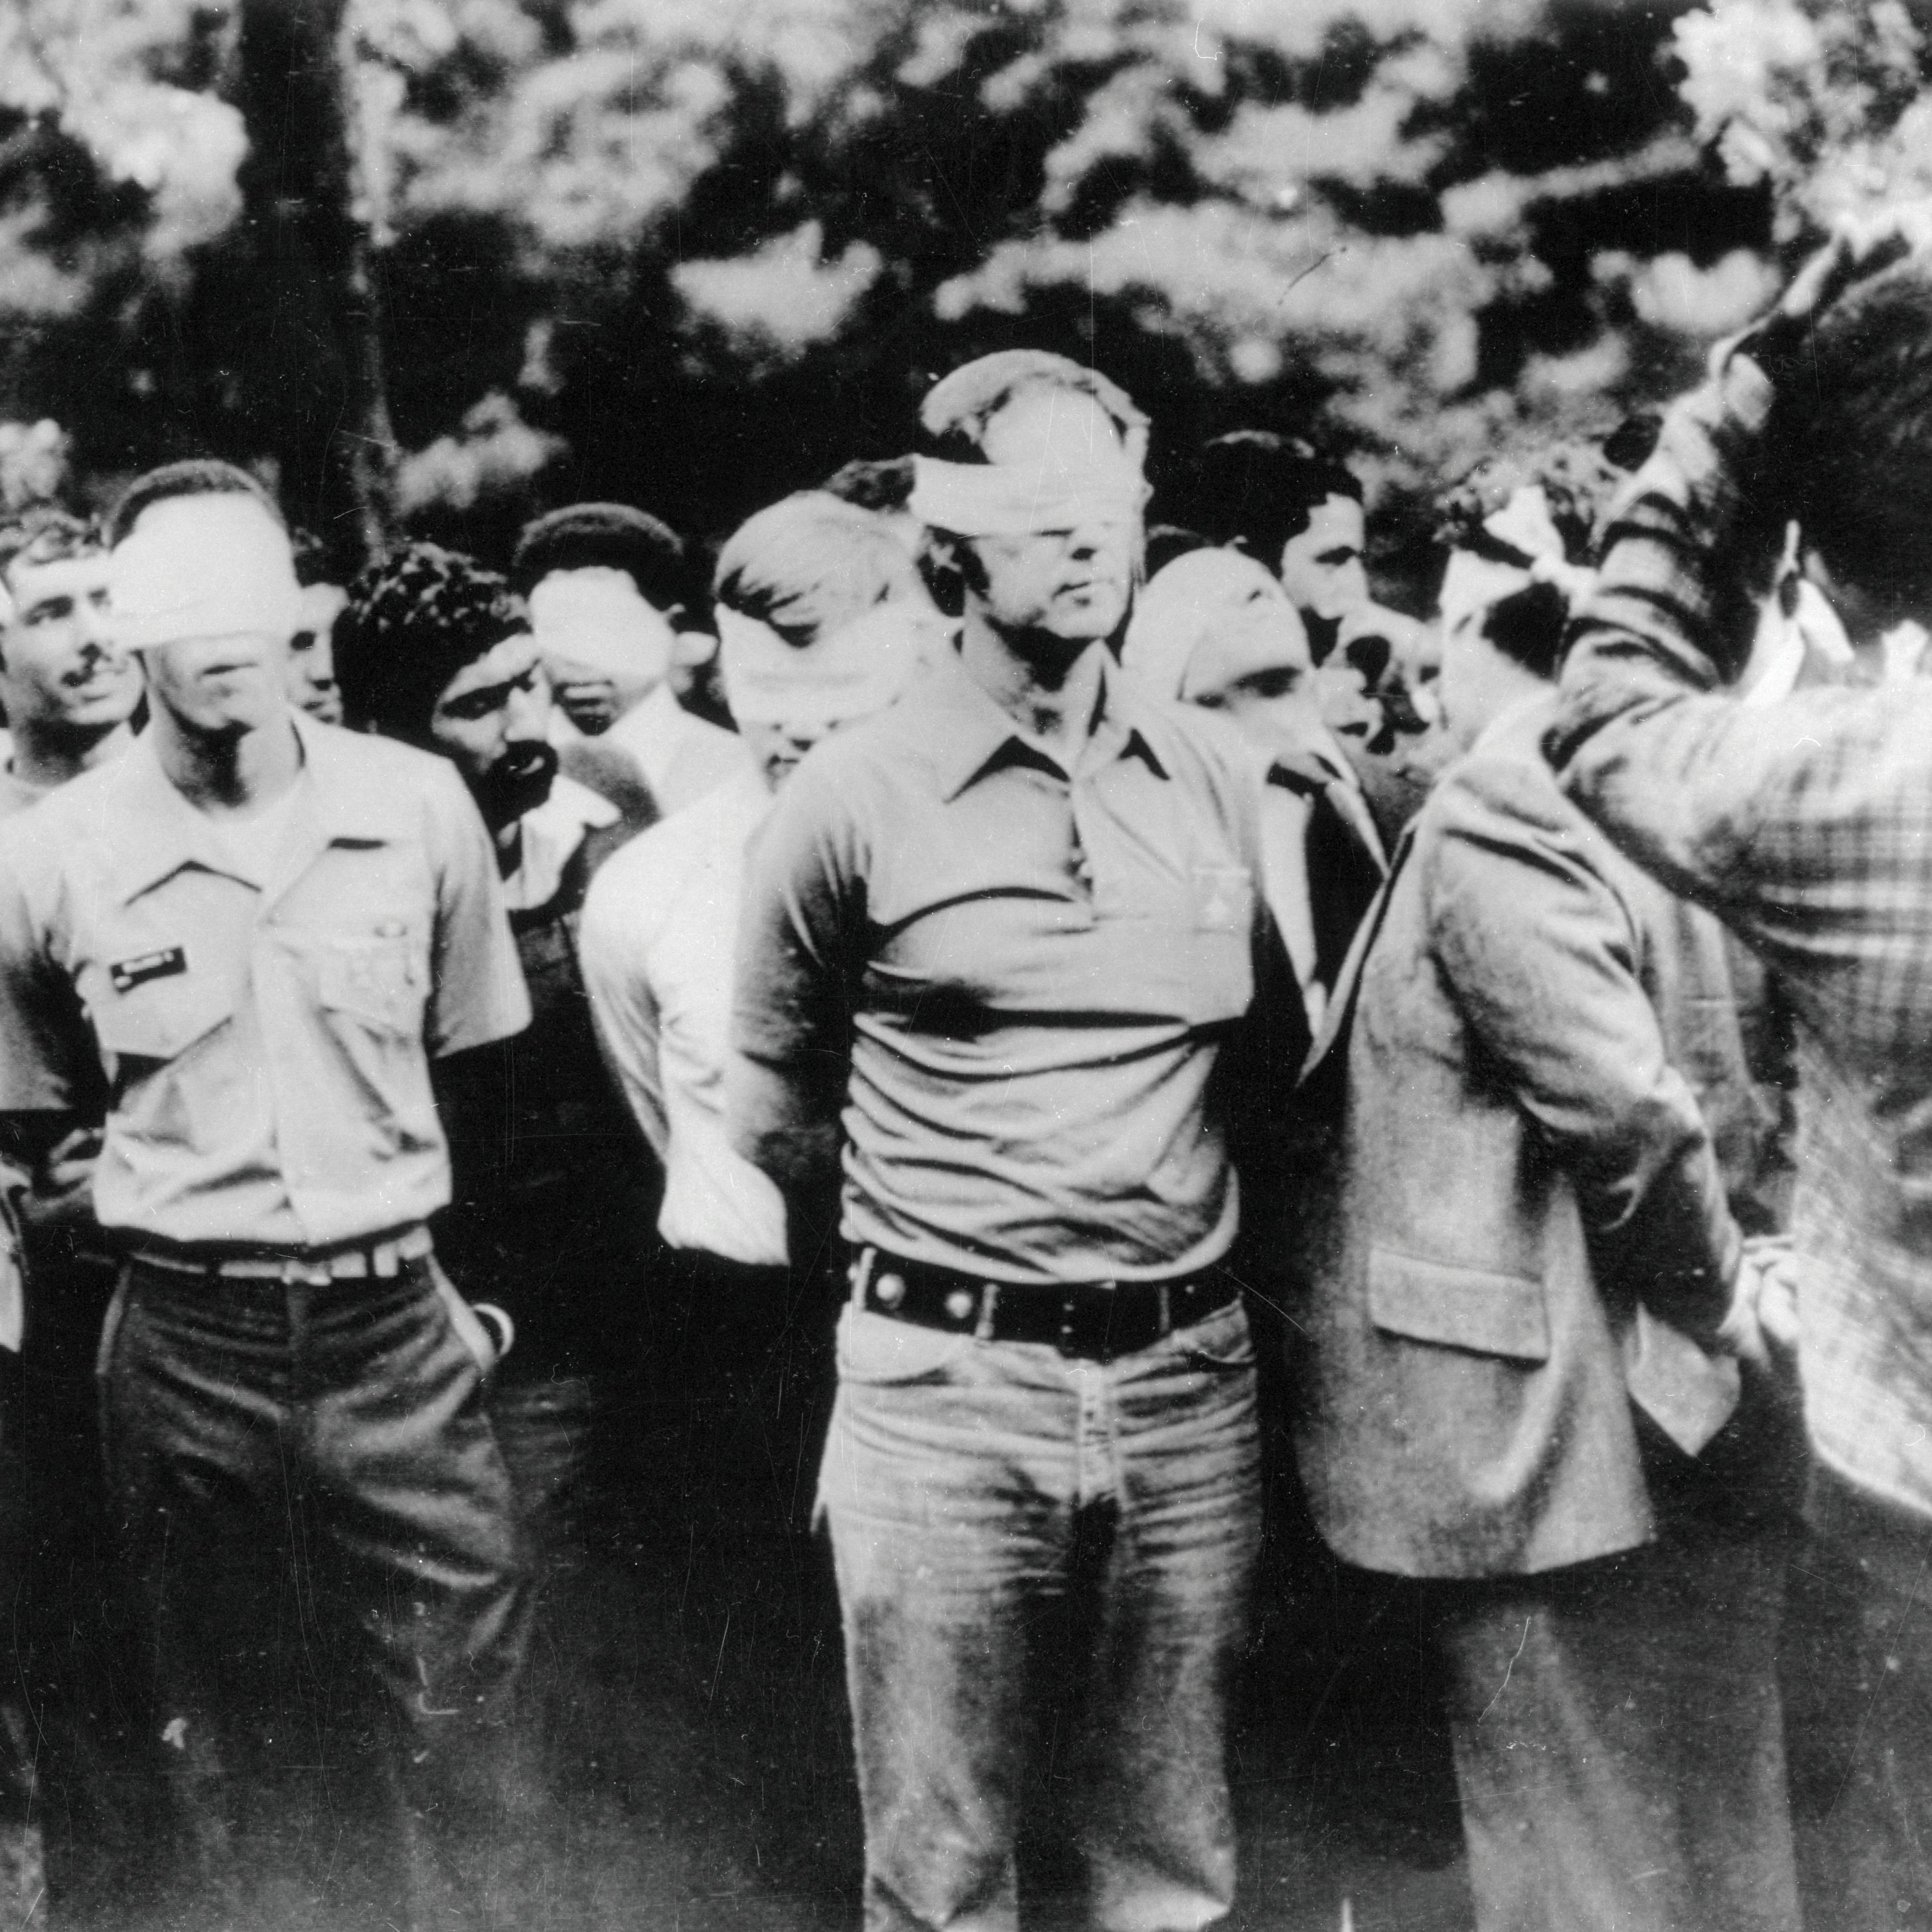 Iran Hostage Crisis: Events, Causes, and Aftermath